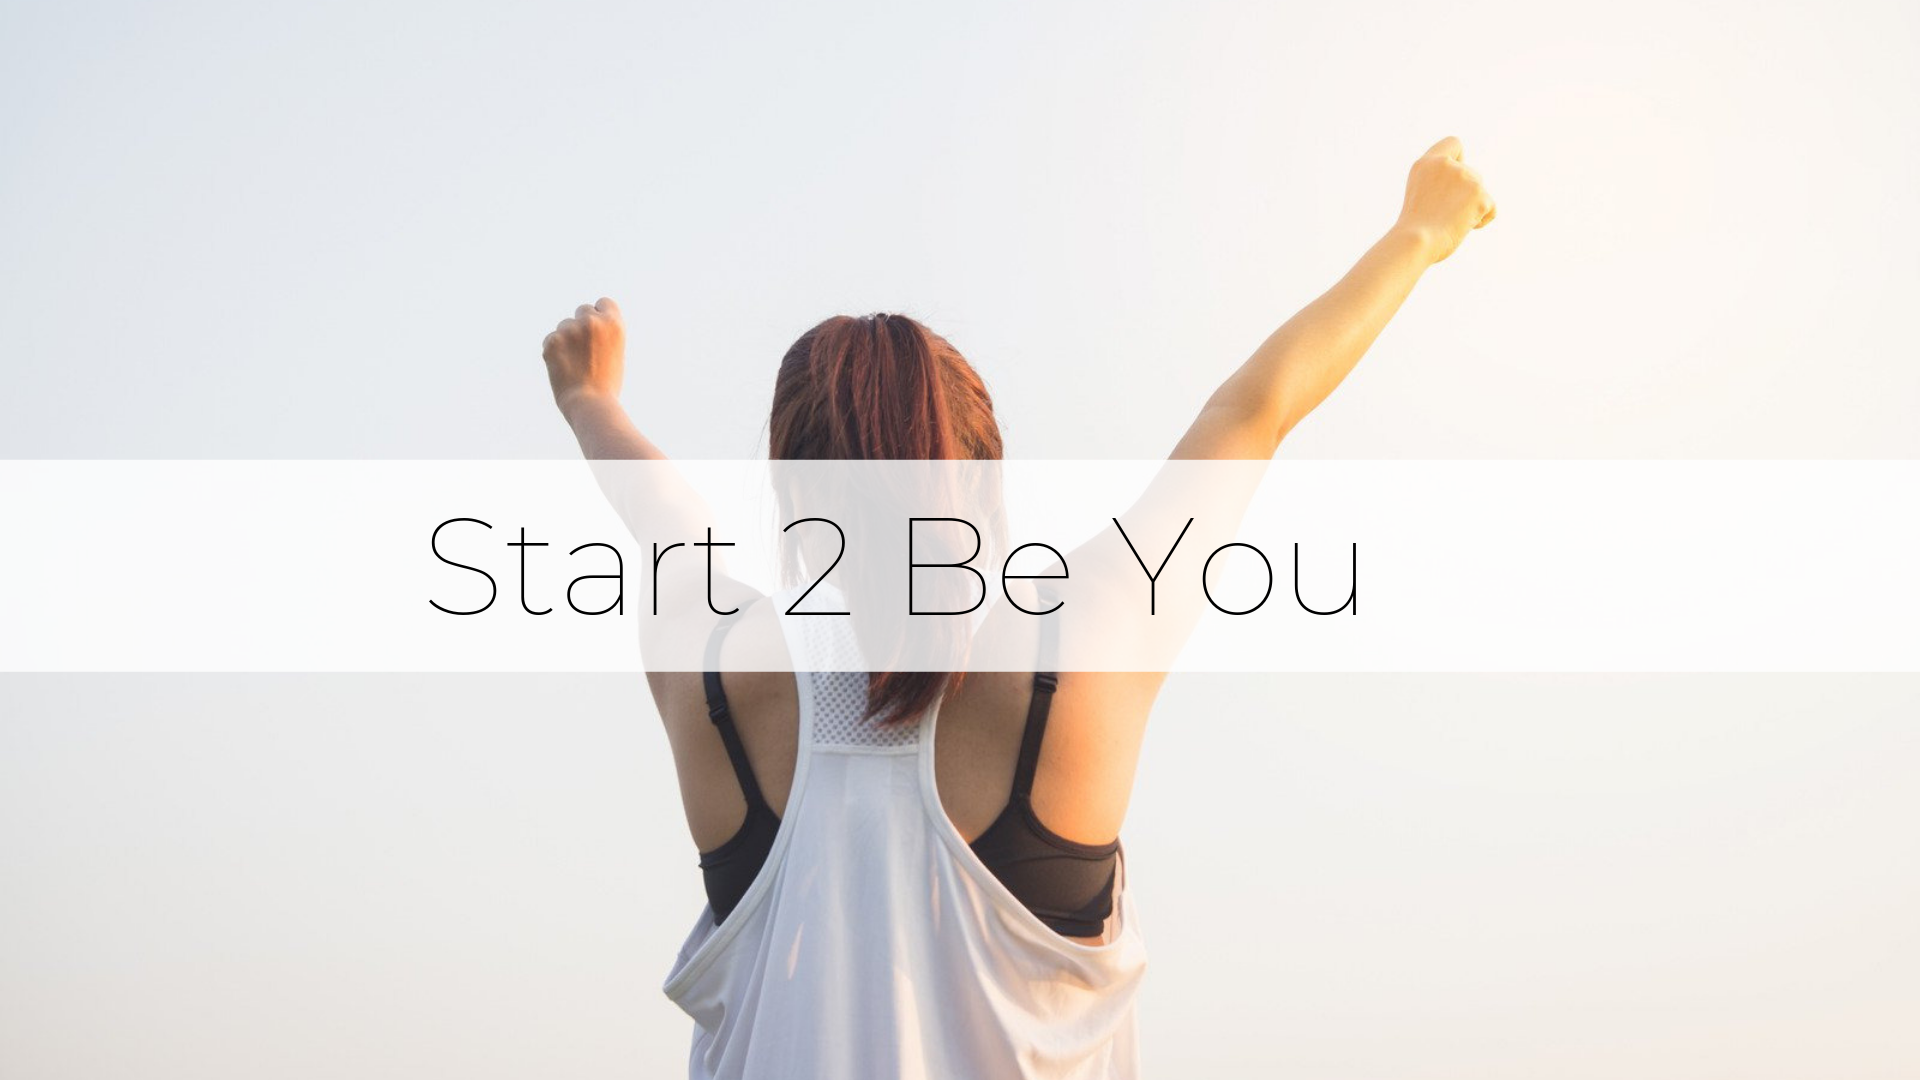 Start 2 Be You